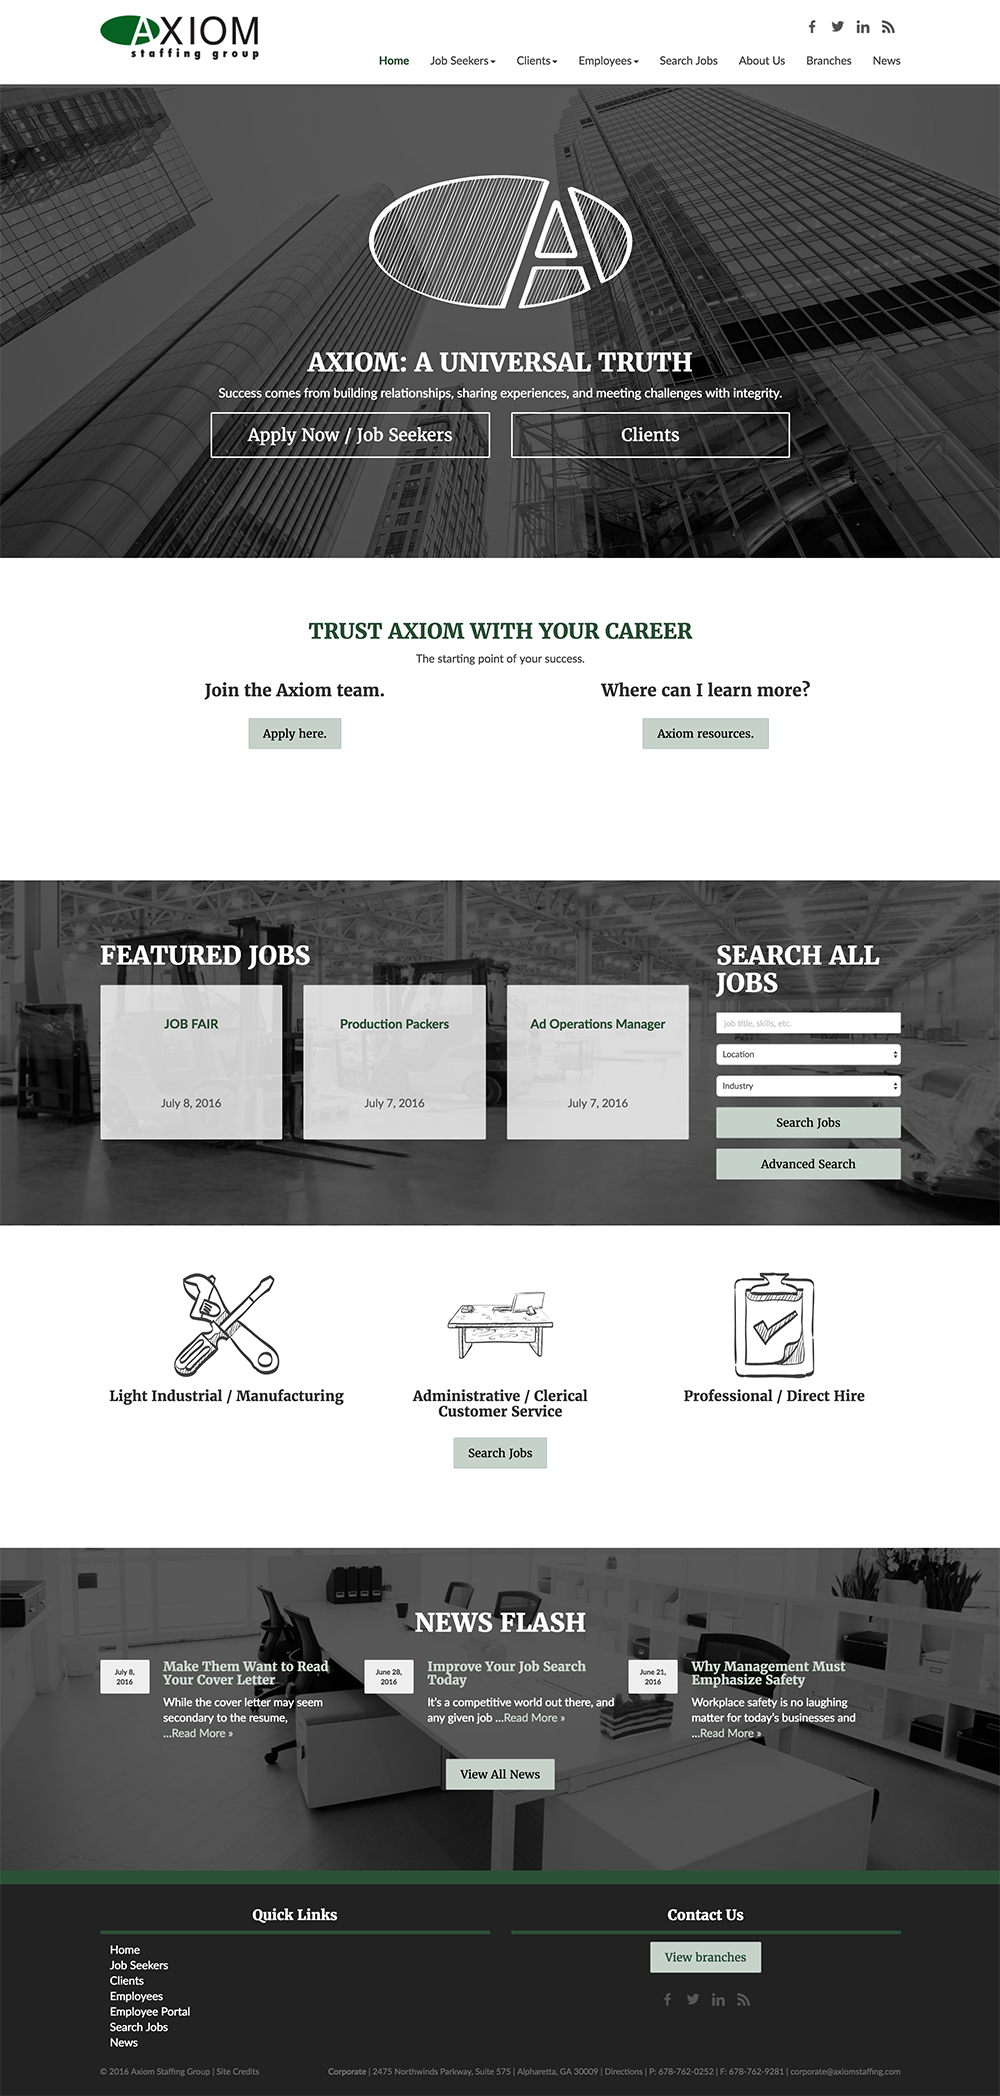 axiom-staffing-website